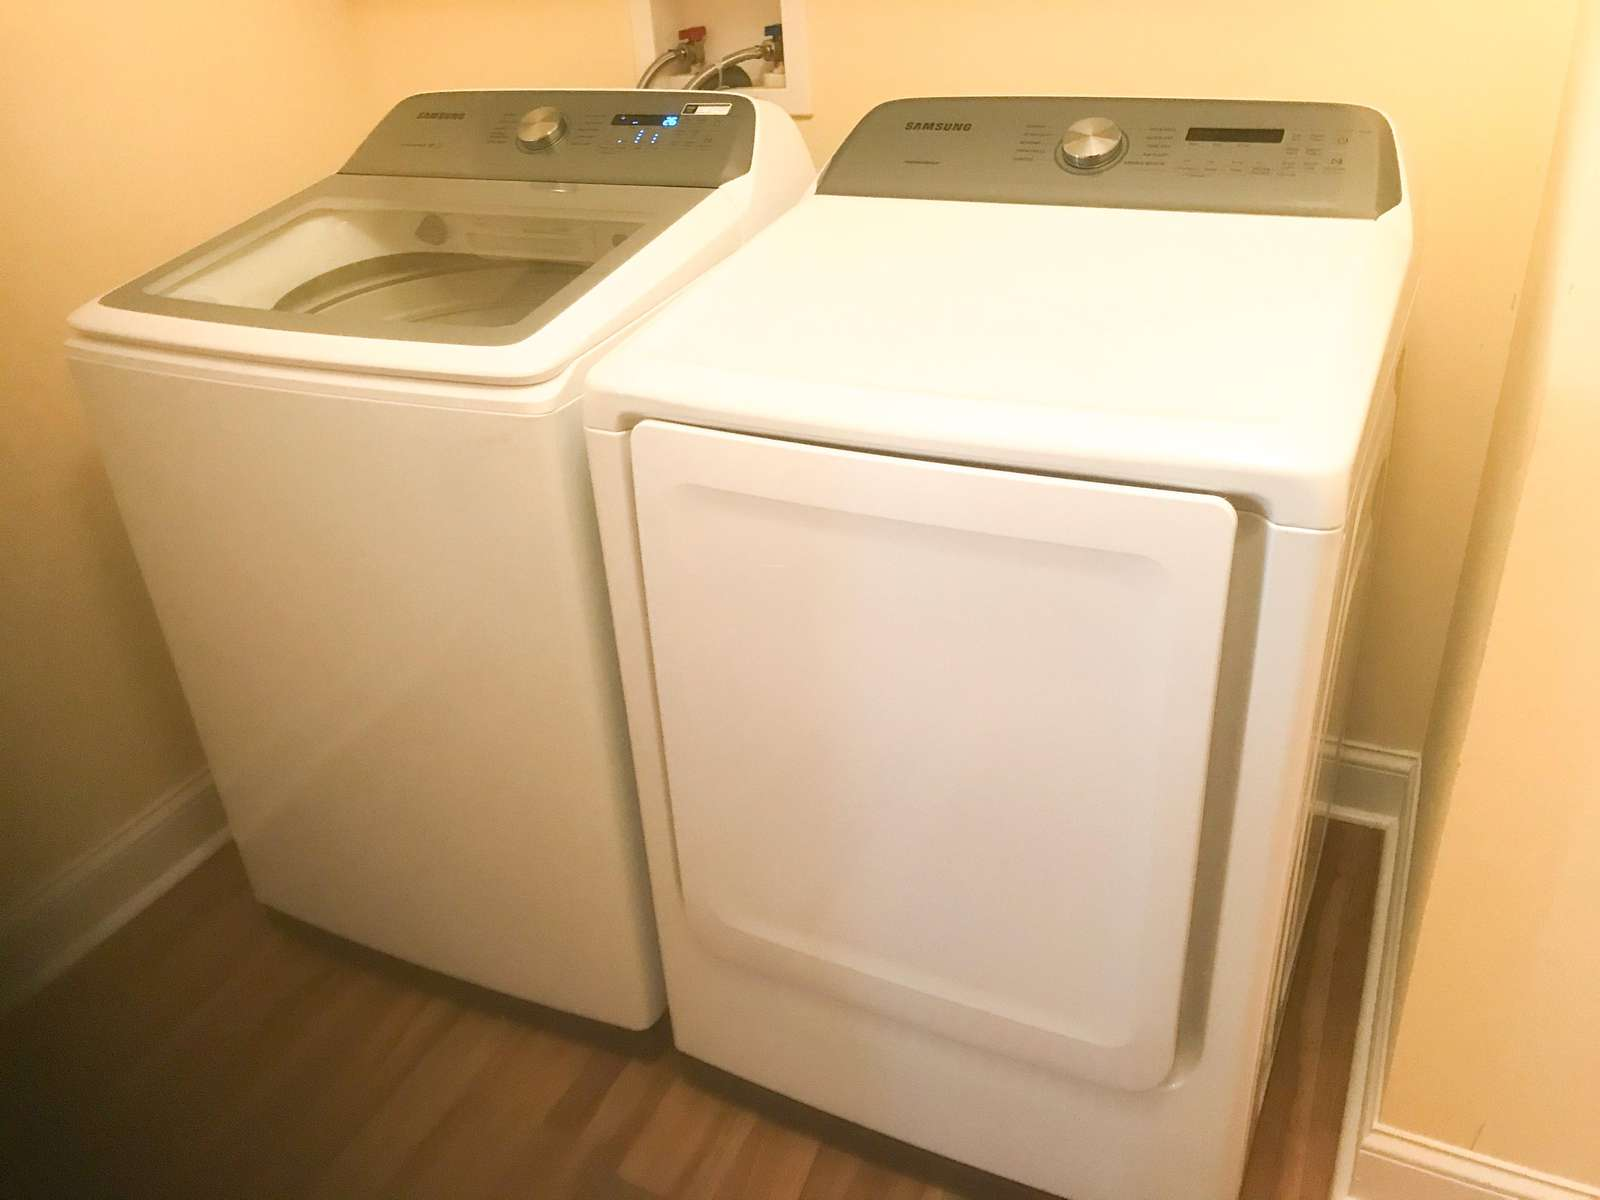 Full-size washer and dryer in laundry room